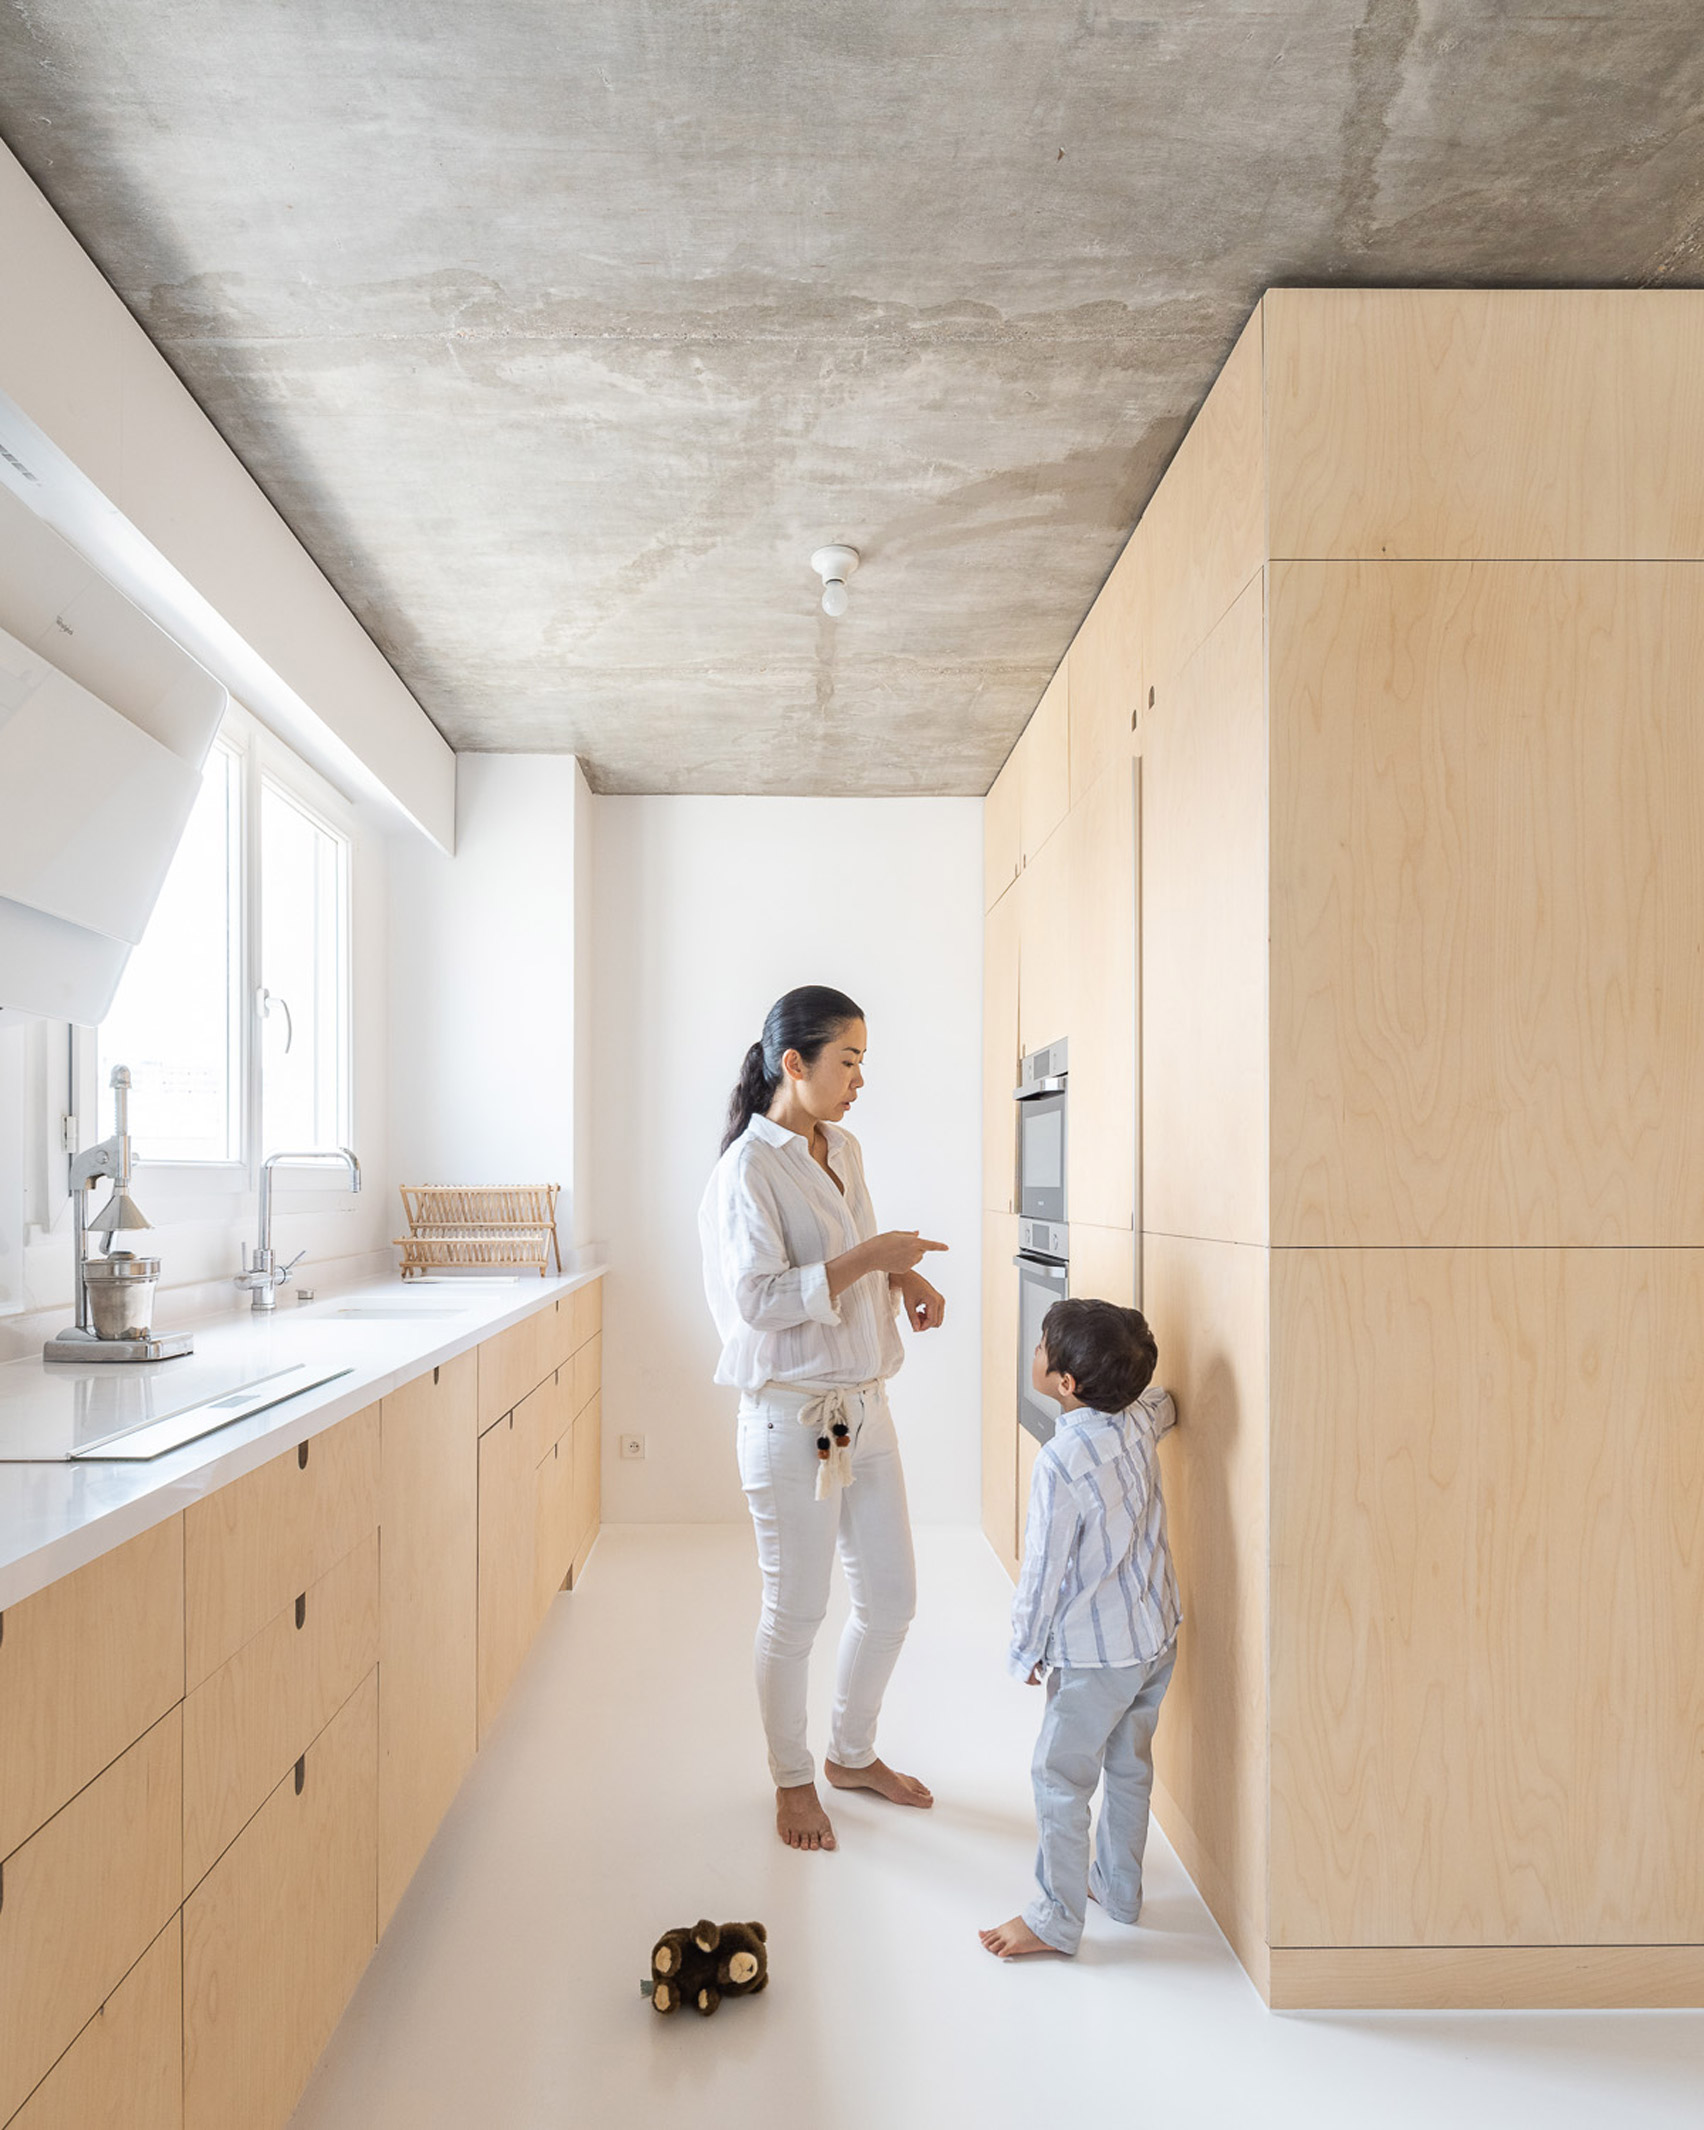 Wood covers the cabinetry at Sacha apartment by SABO project